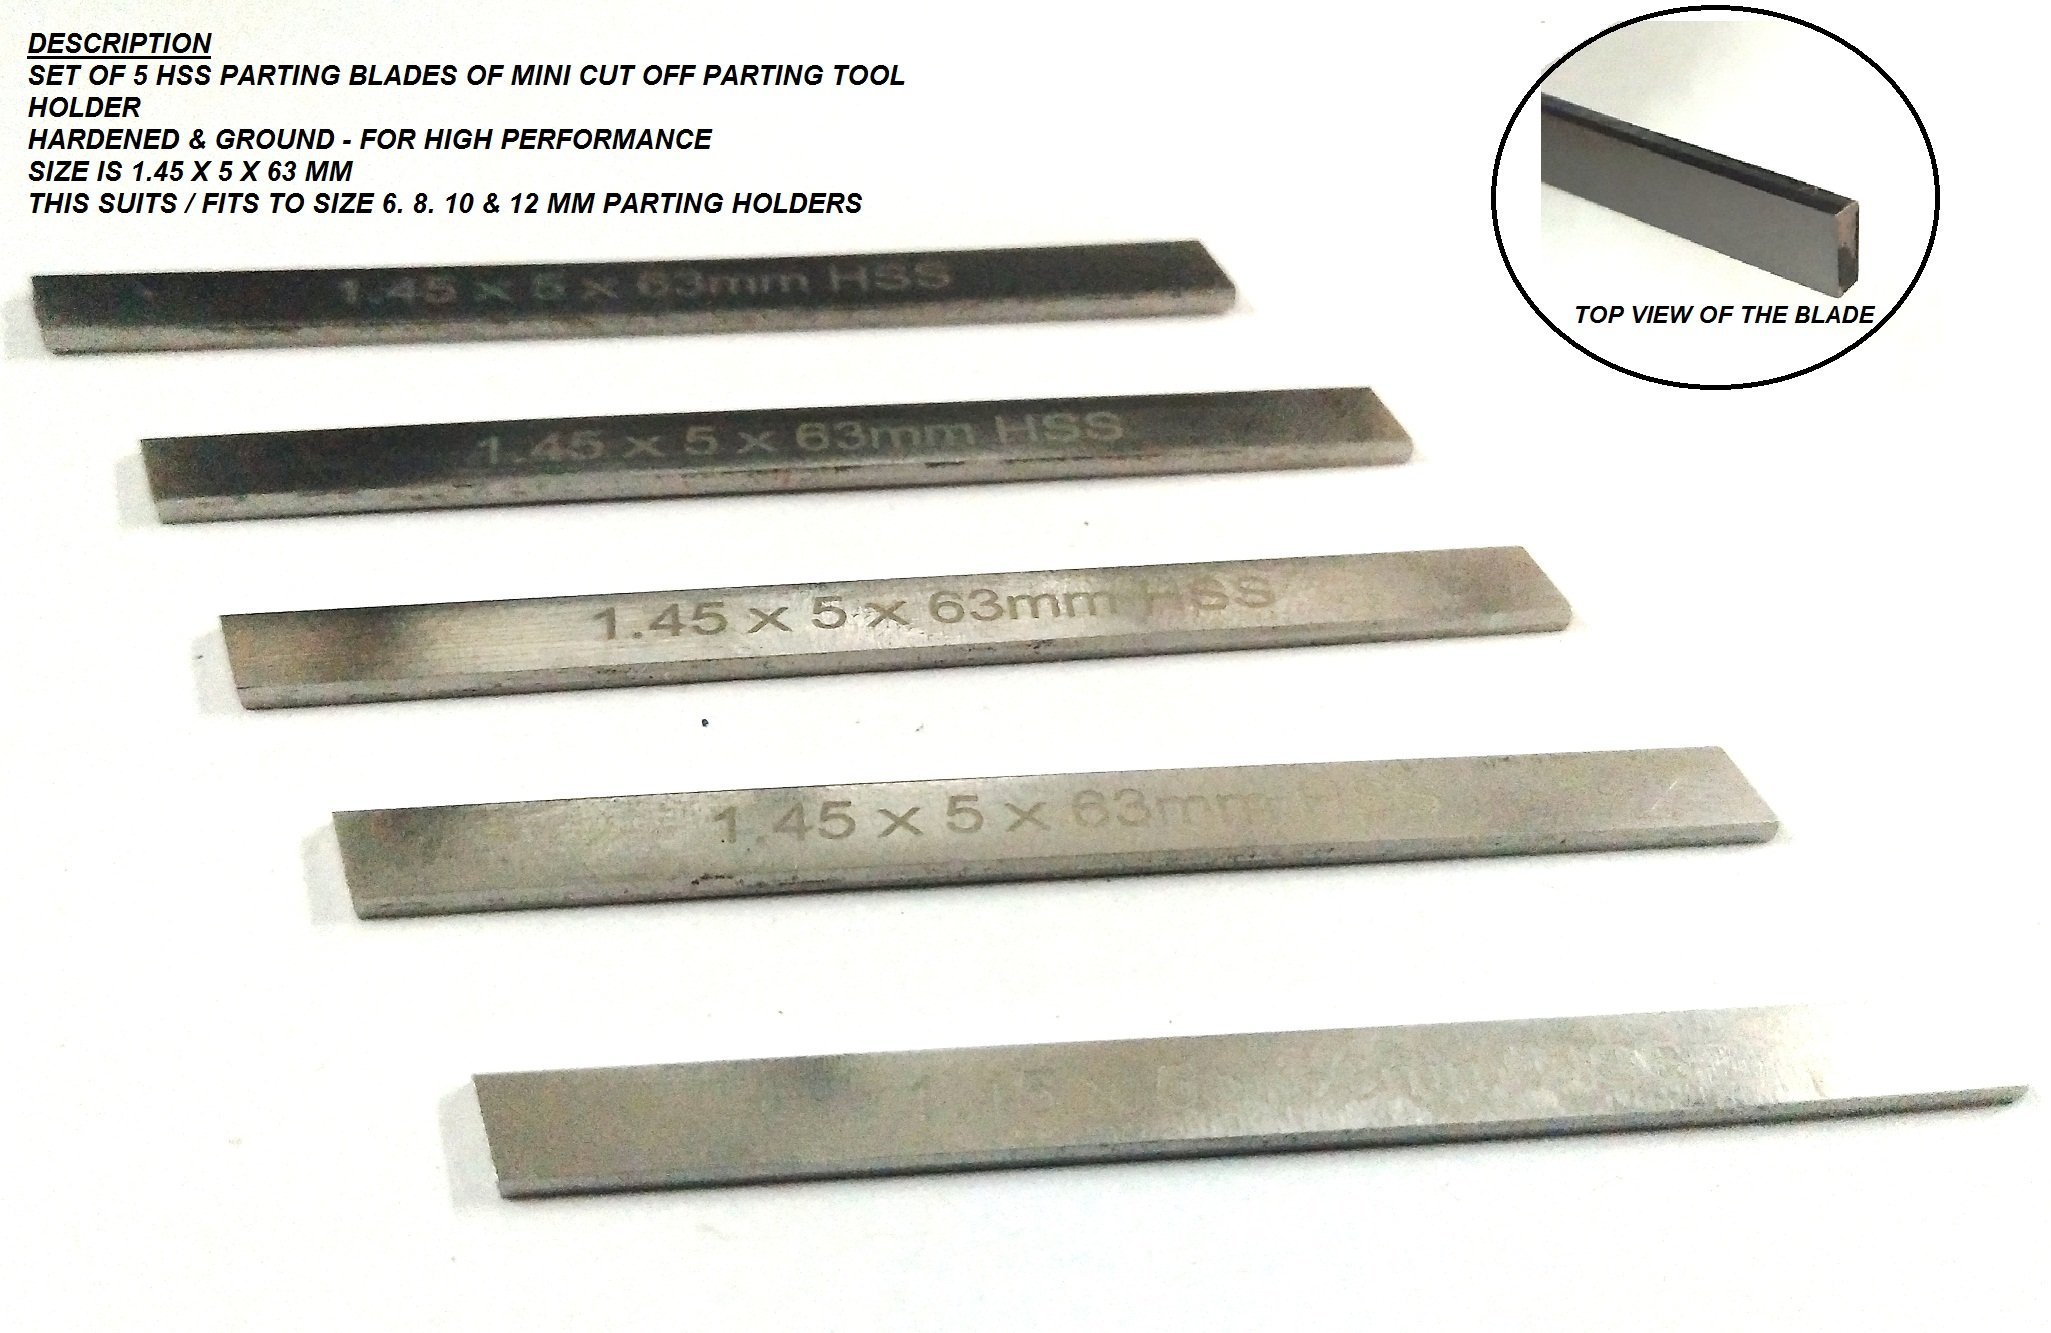 Set of 5 HSS Spare Parting Blades for Mini Cut Off Tool Holders 6,8, 10 mm Shank Sizes